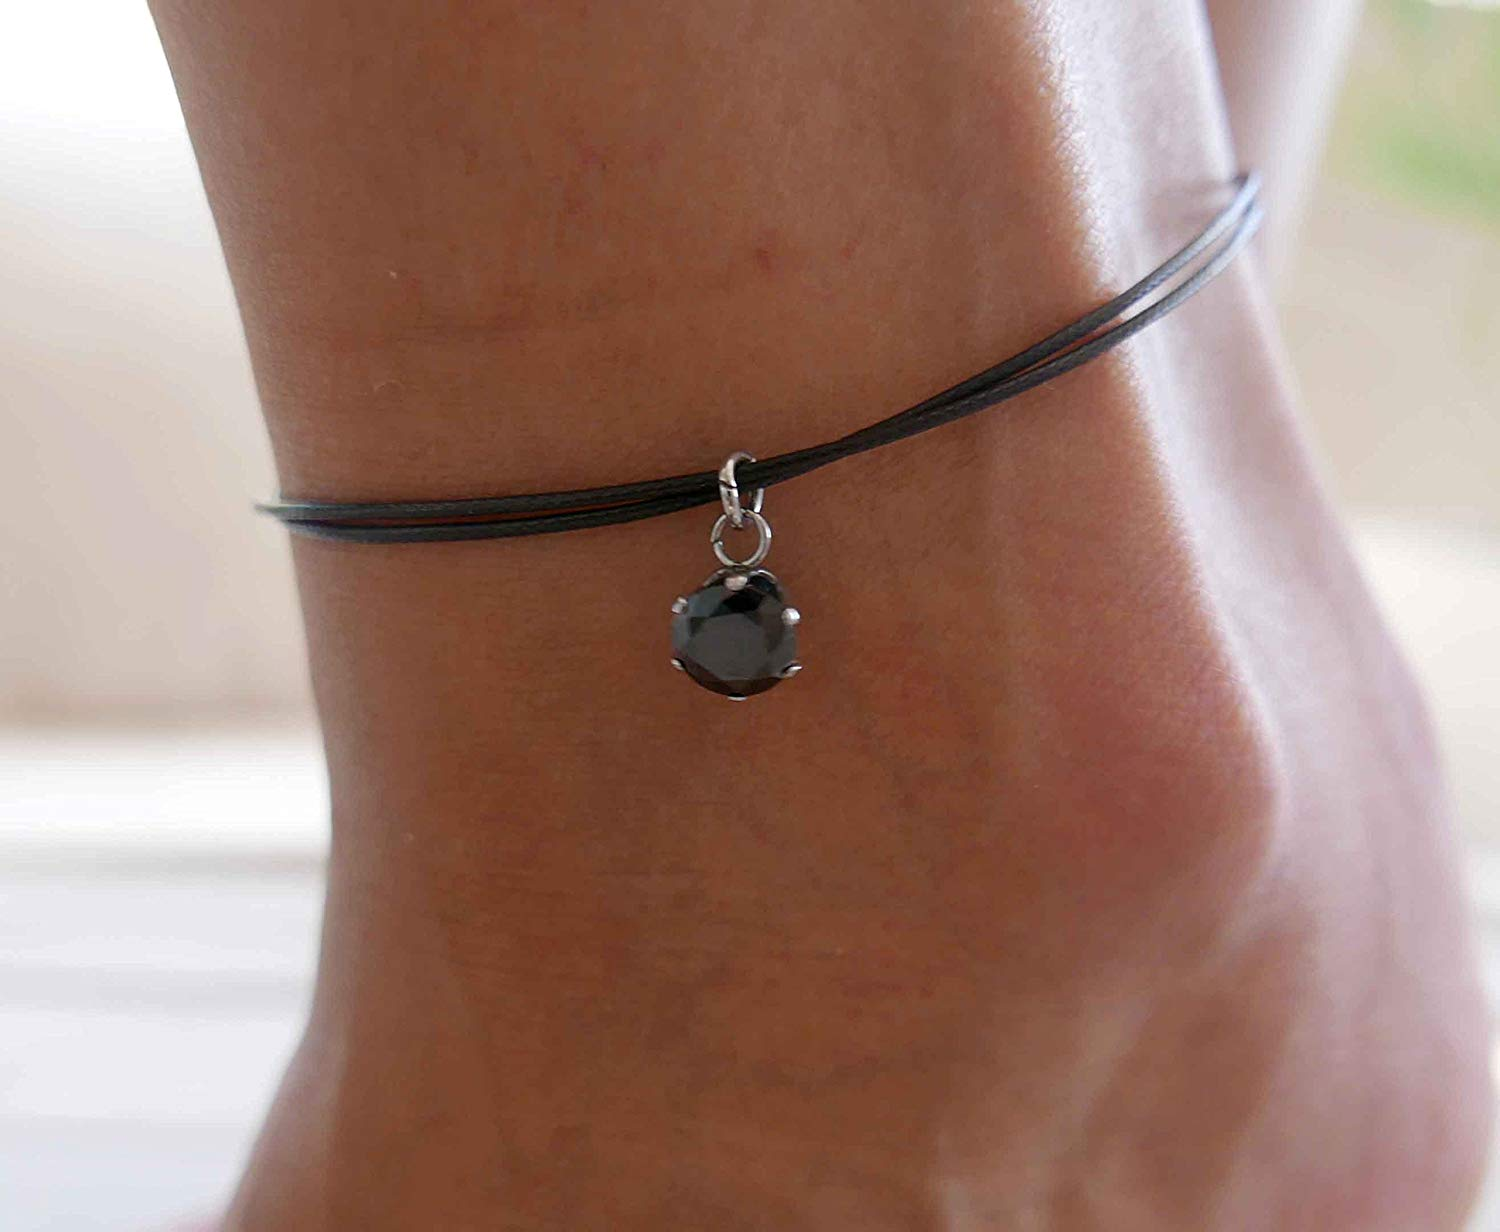 Handmade Black Anklet For Women Set With Black Zircon By Galis Jewelry - Black Ankle Bracelet For Women - Beaded Anklet